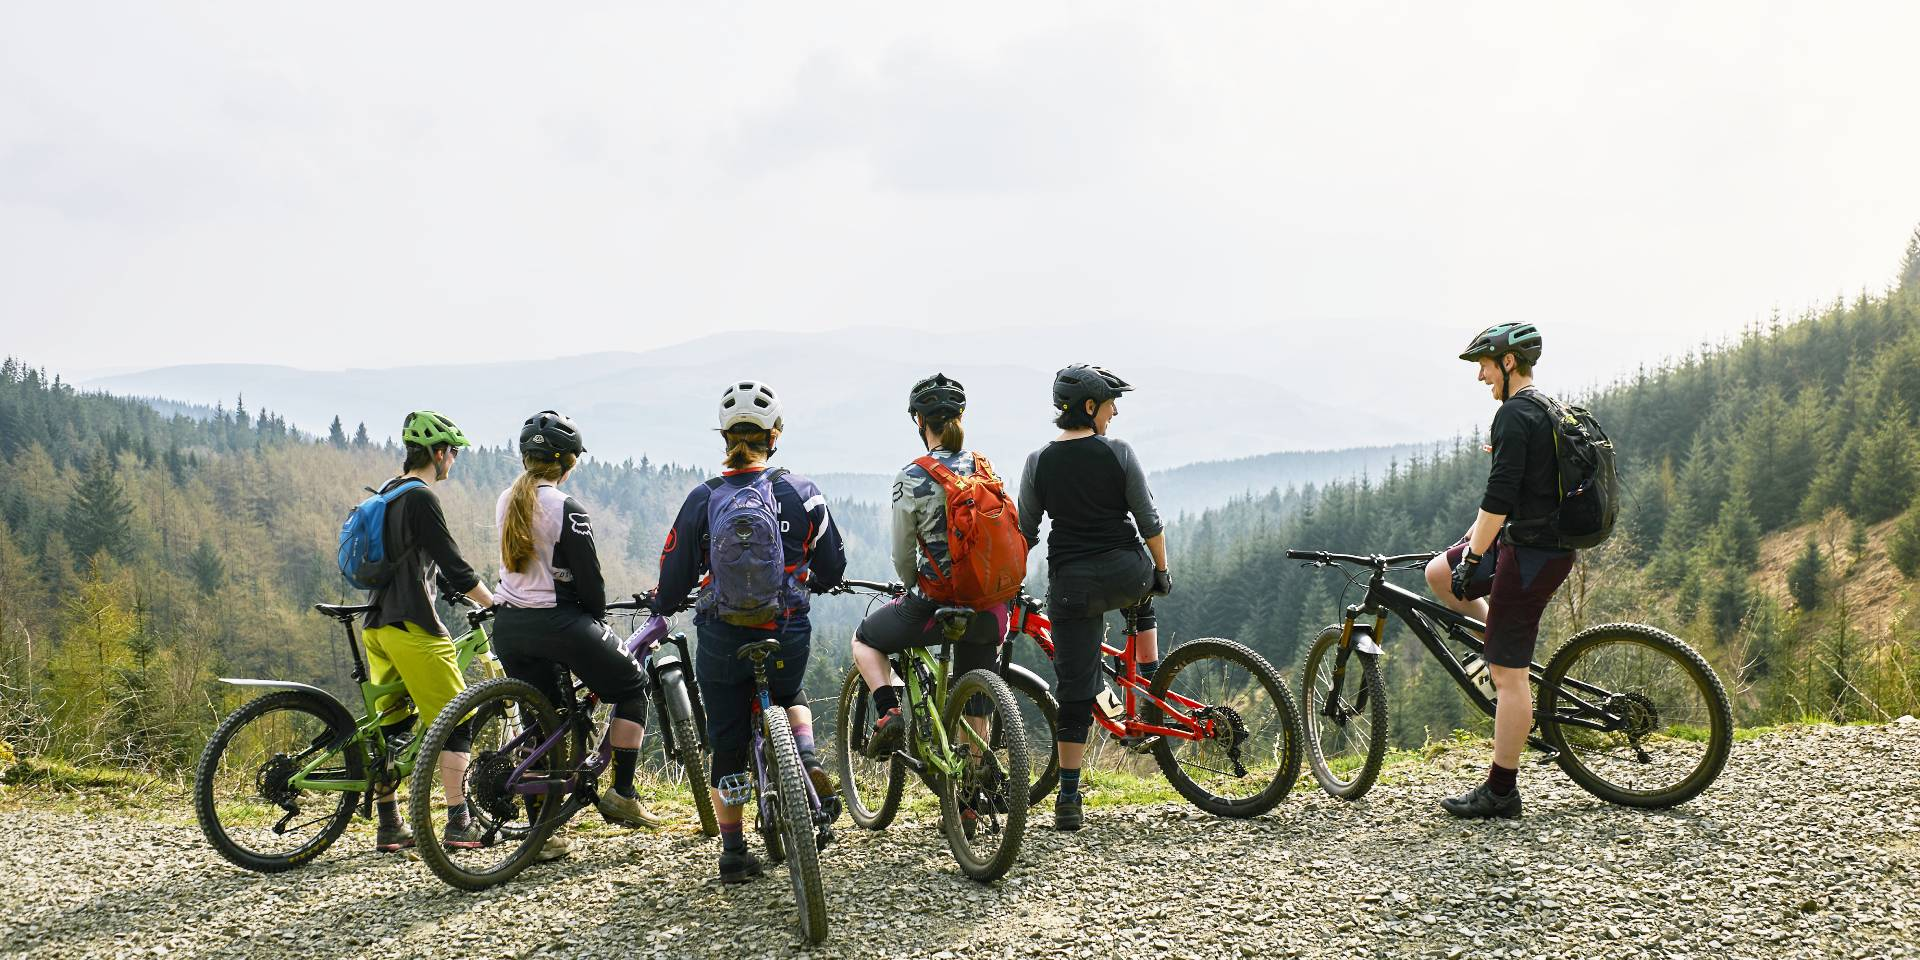 A group of cyclists on the hillside